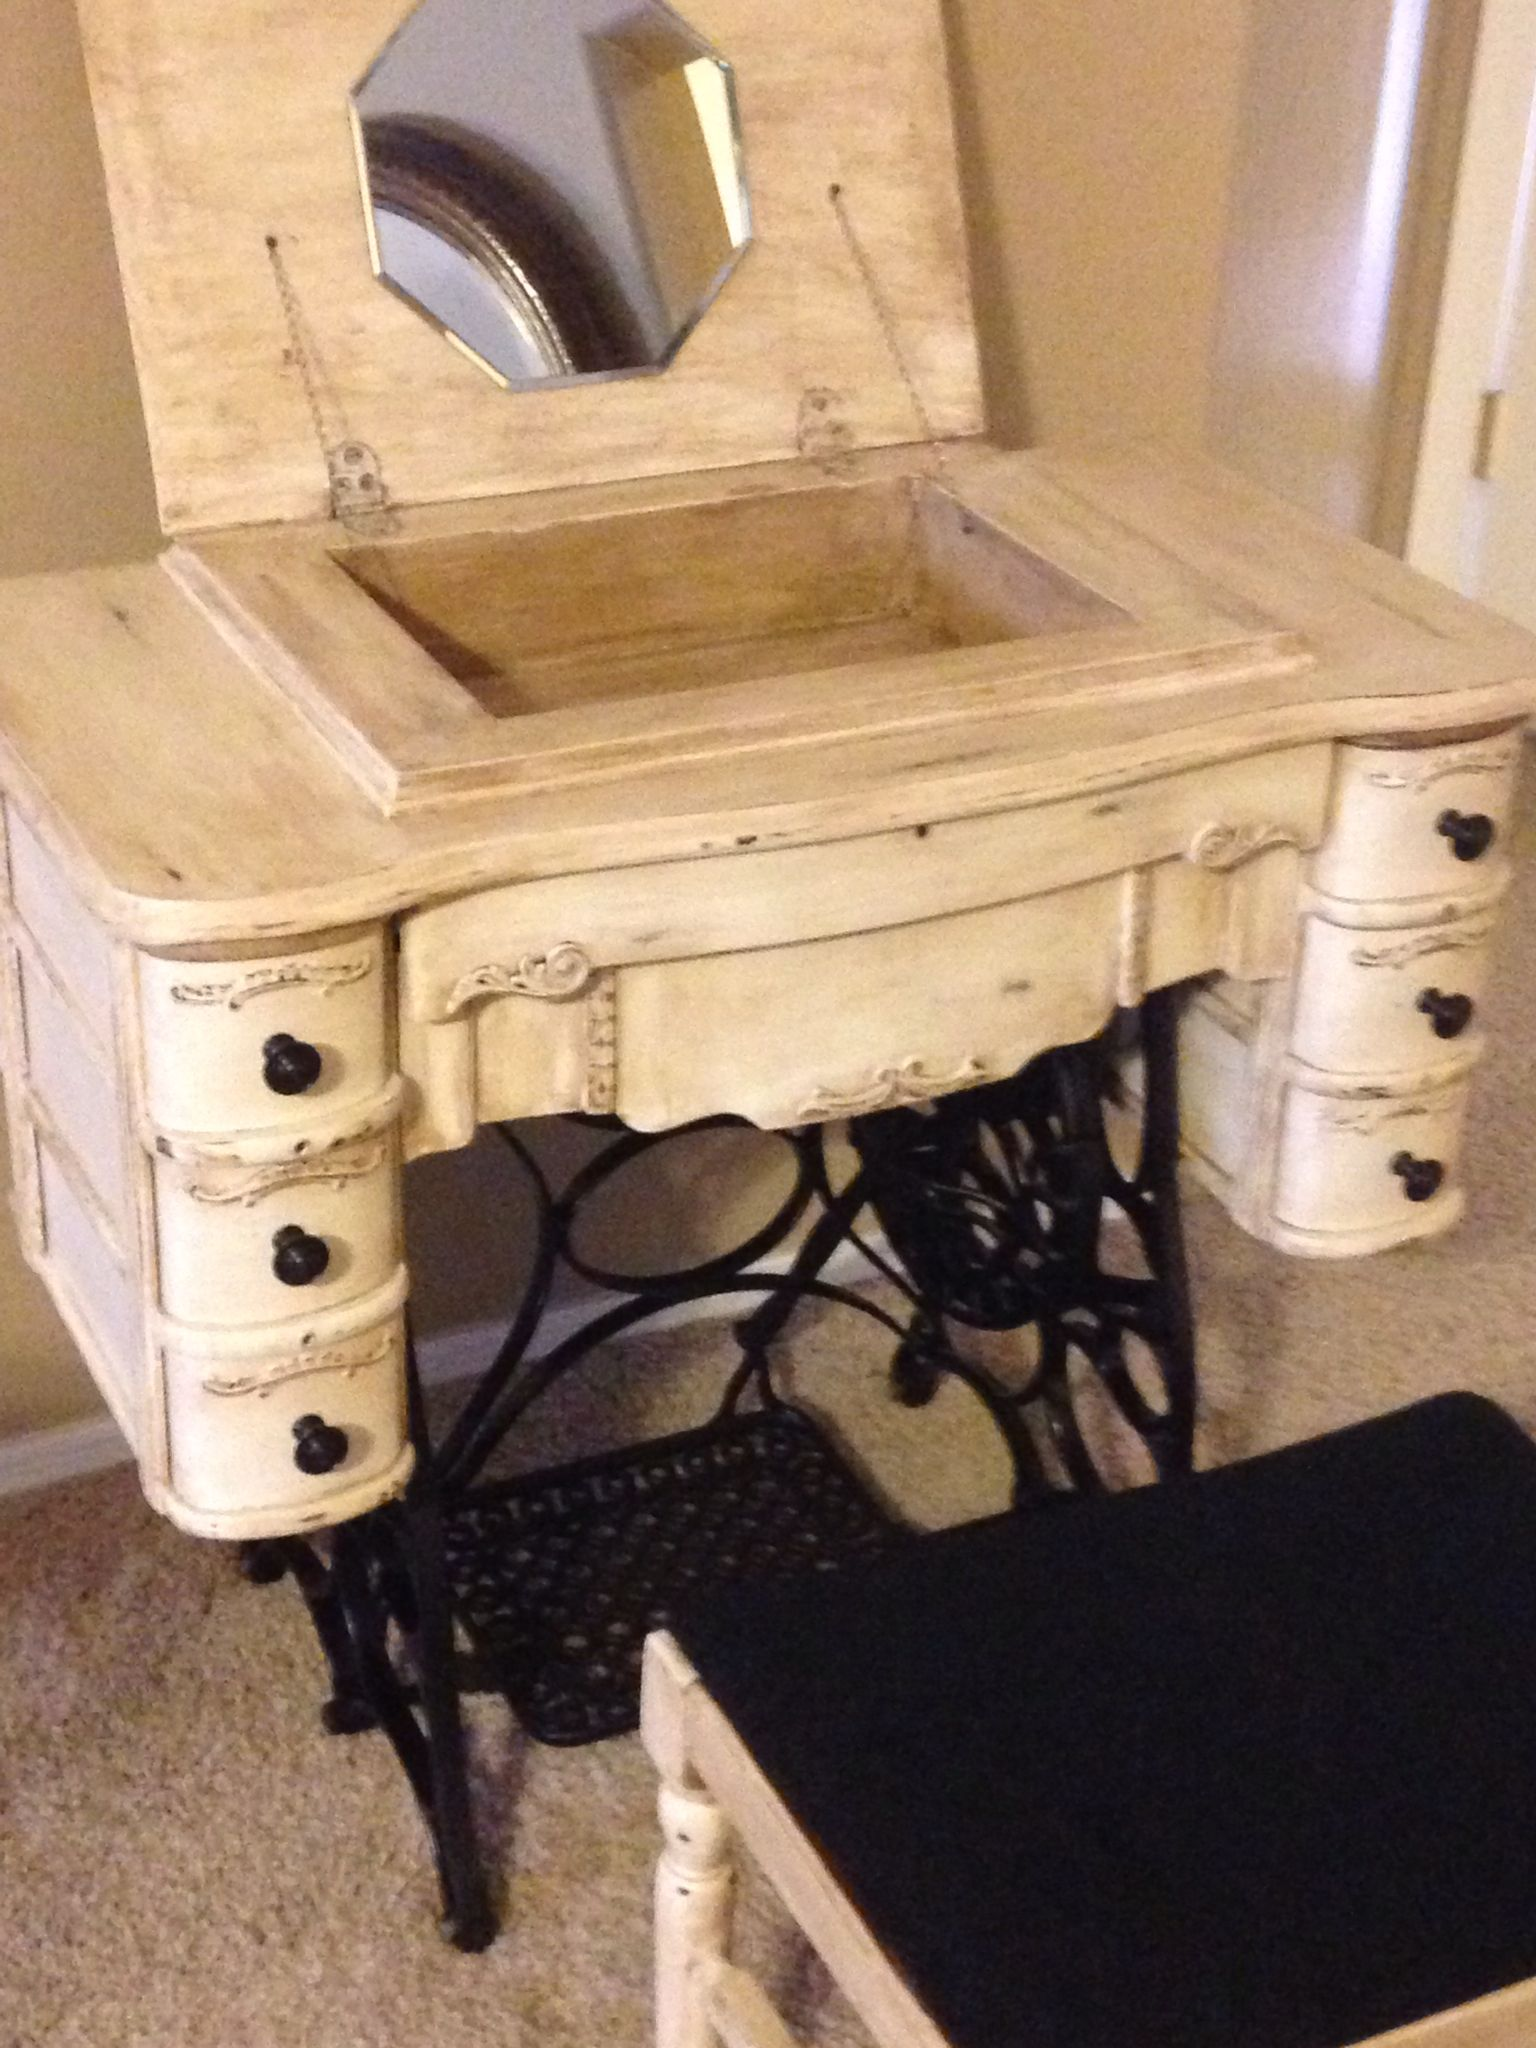 Treadle Sewing Machine That S Been Repurposed Into A